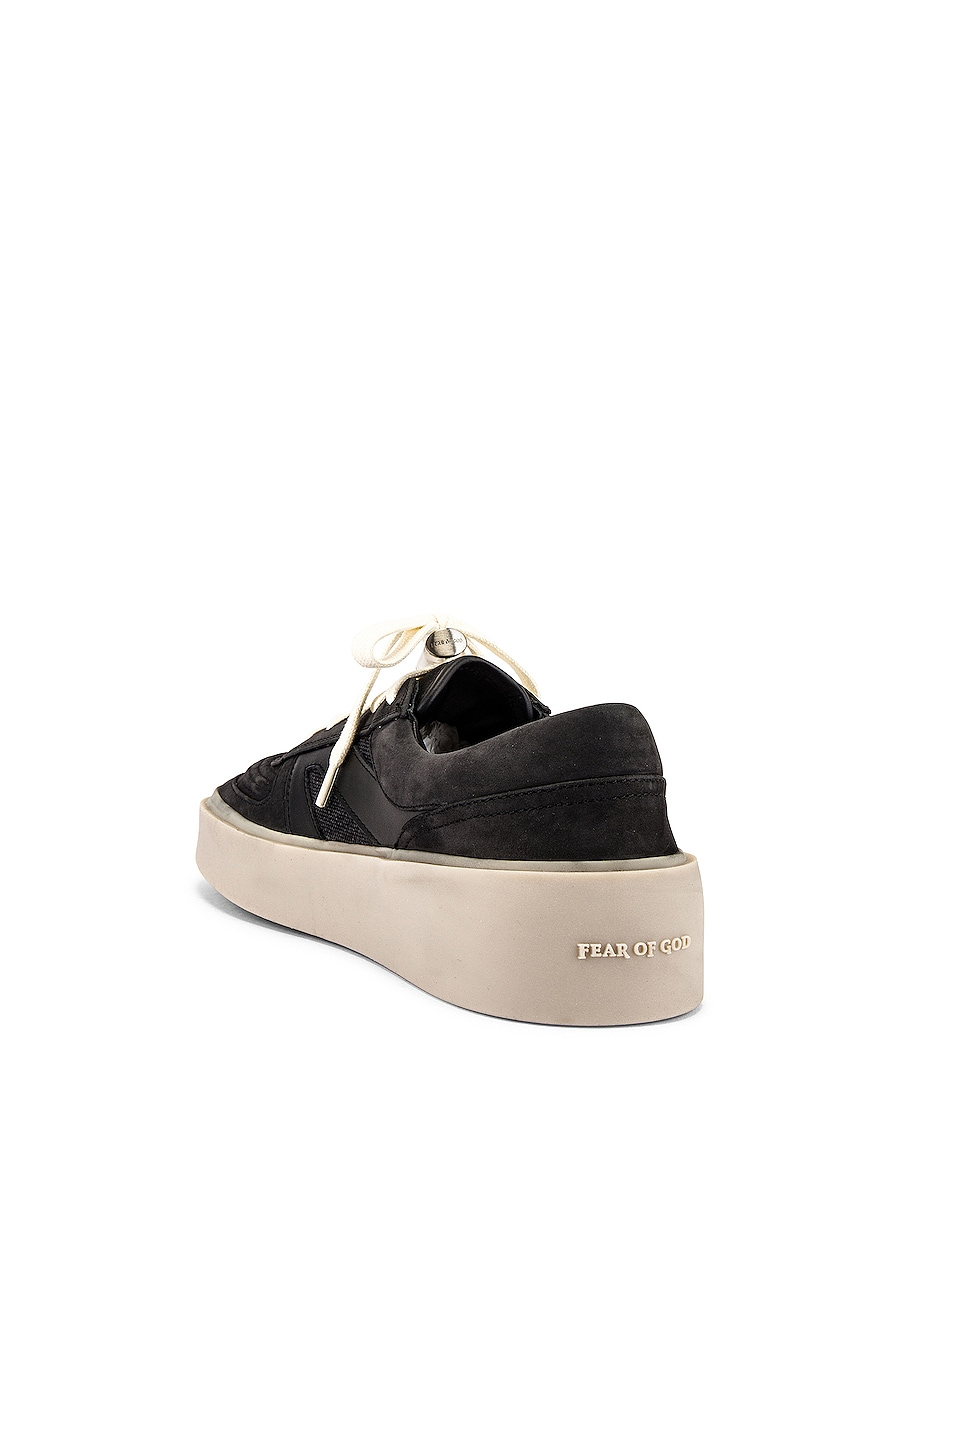 Image 3 of Fear of God Strapless Skate Mid in Black & Grey Gum Sole